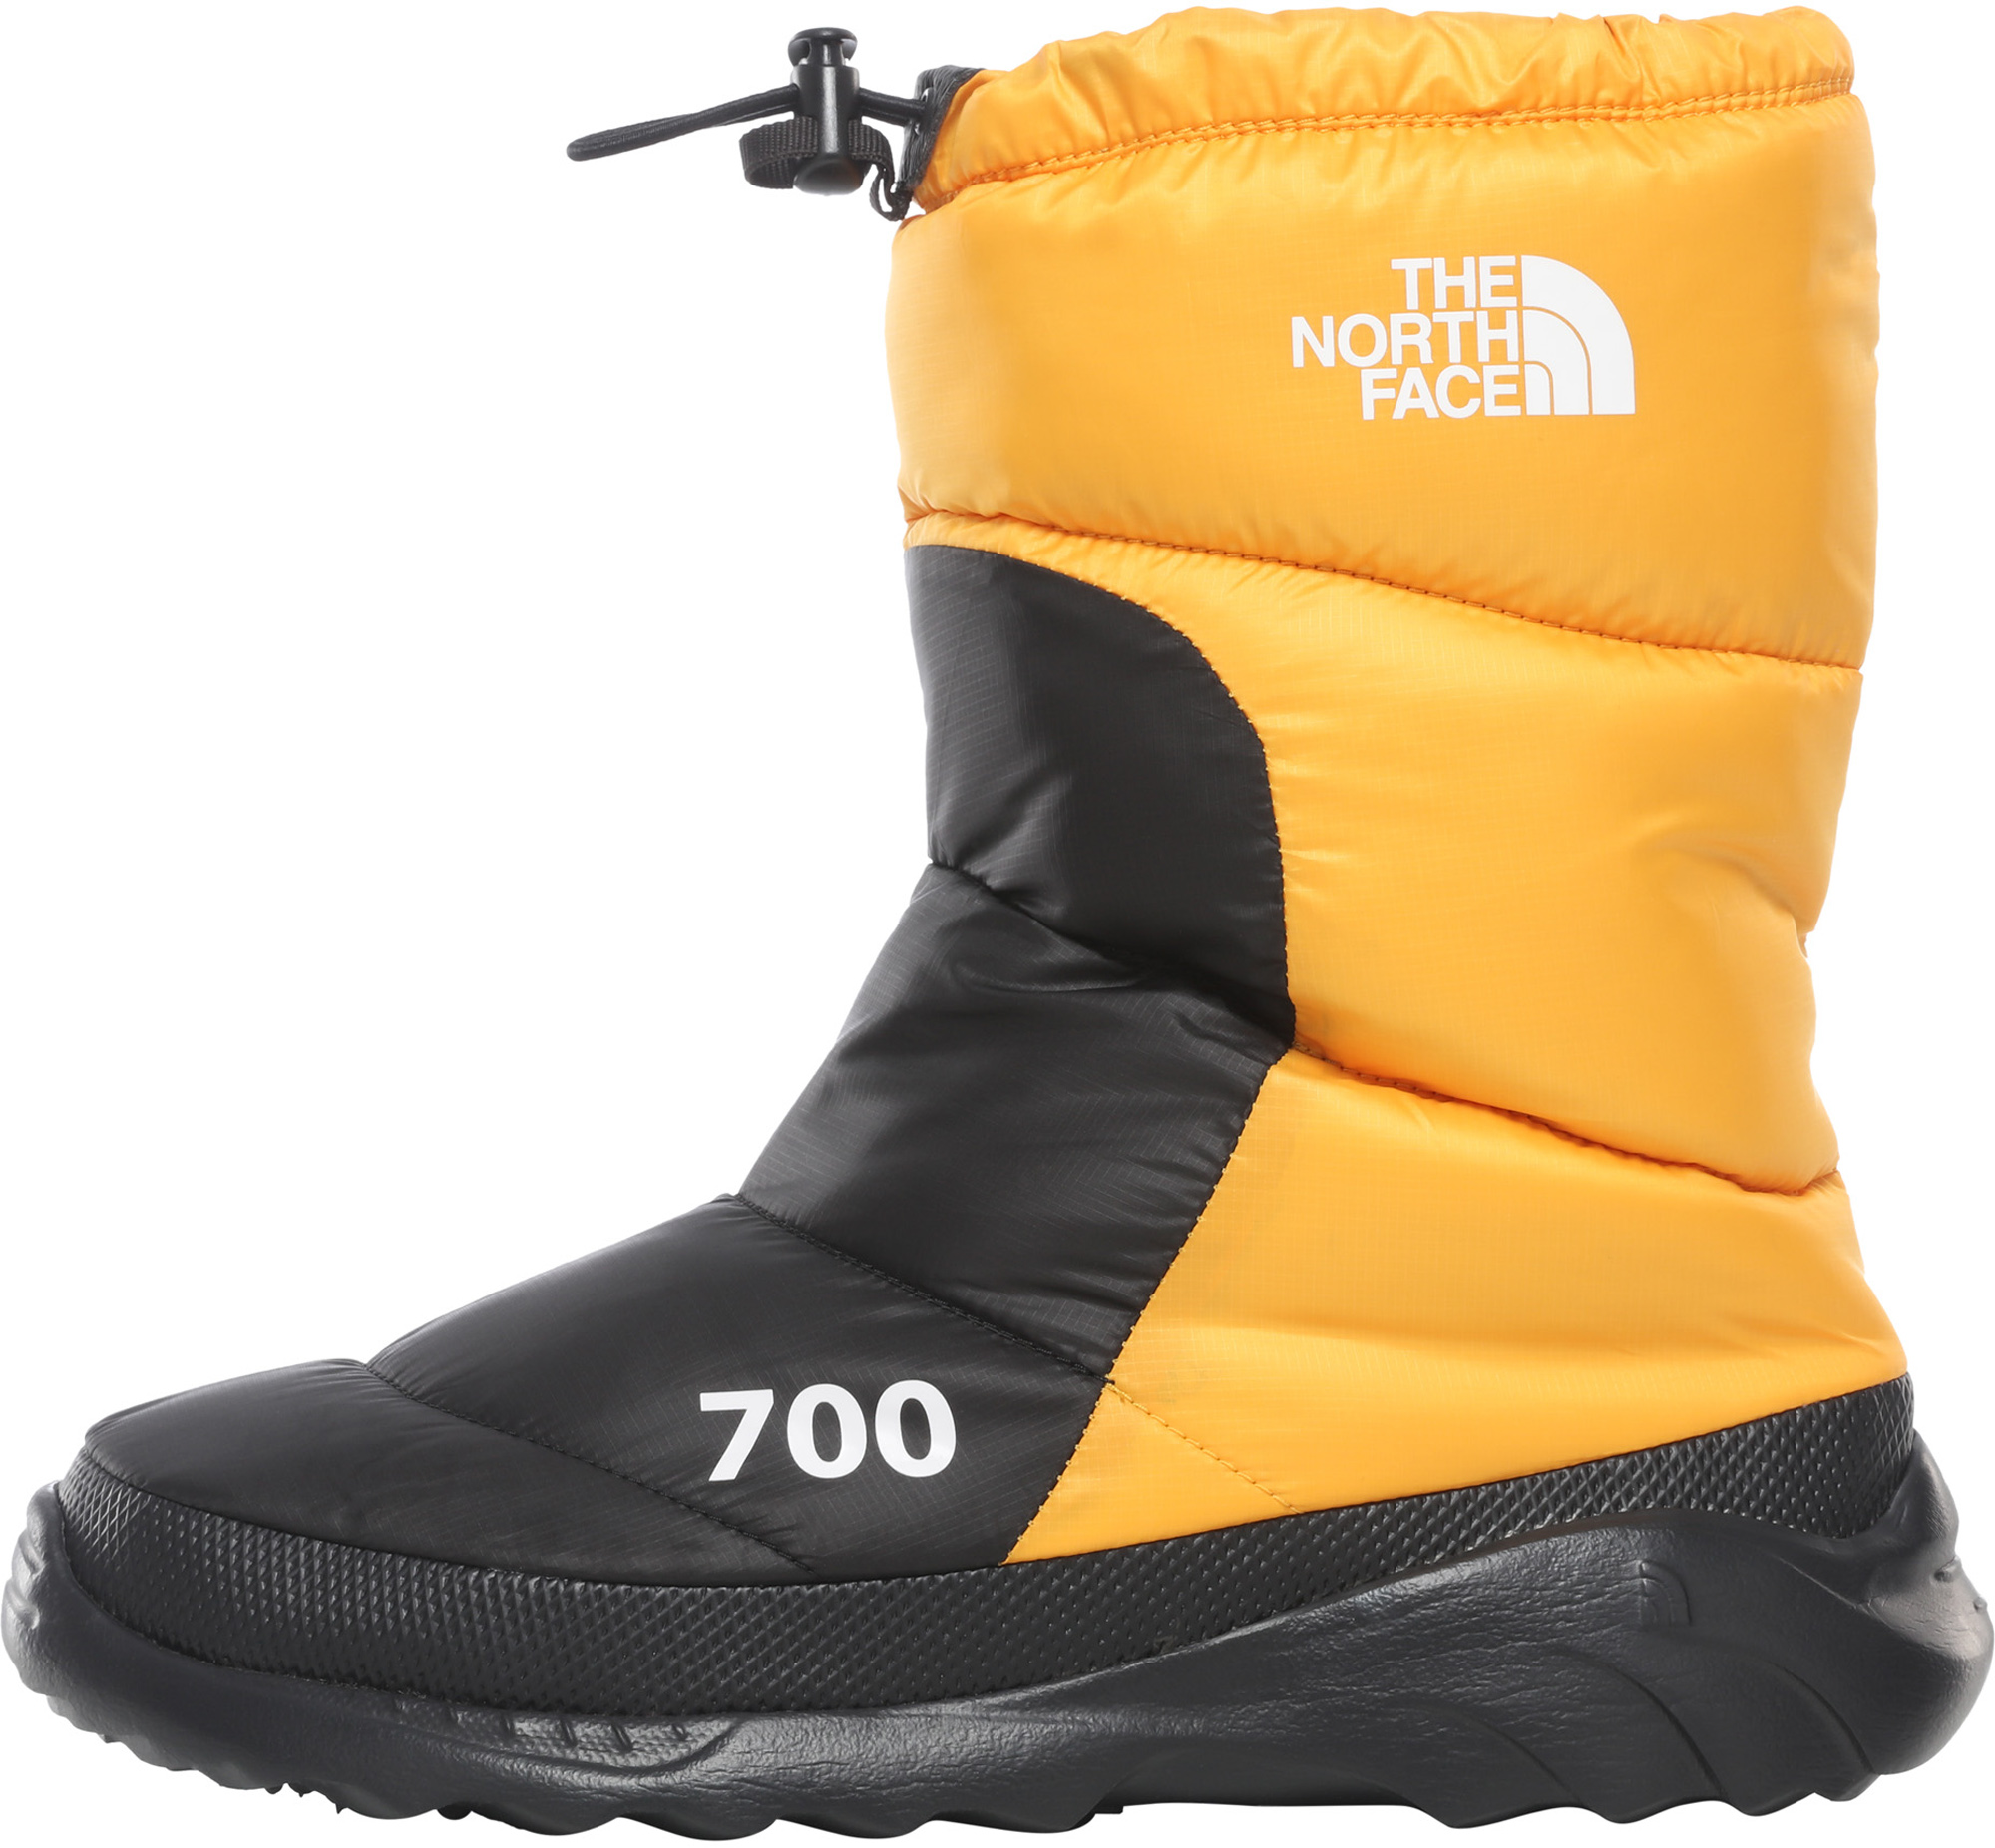 The North Face Сапоги утепленные мужские The North Face M Nuptse Bootie 700, размер 44.5